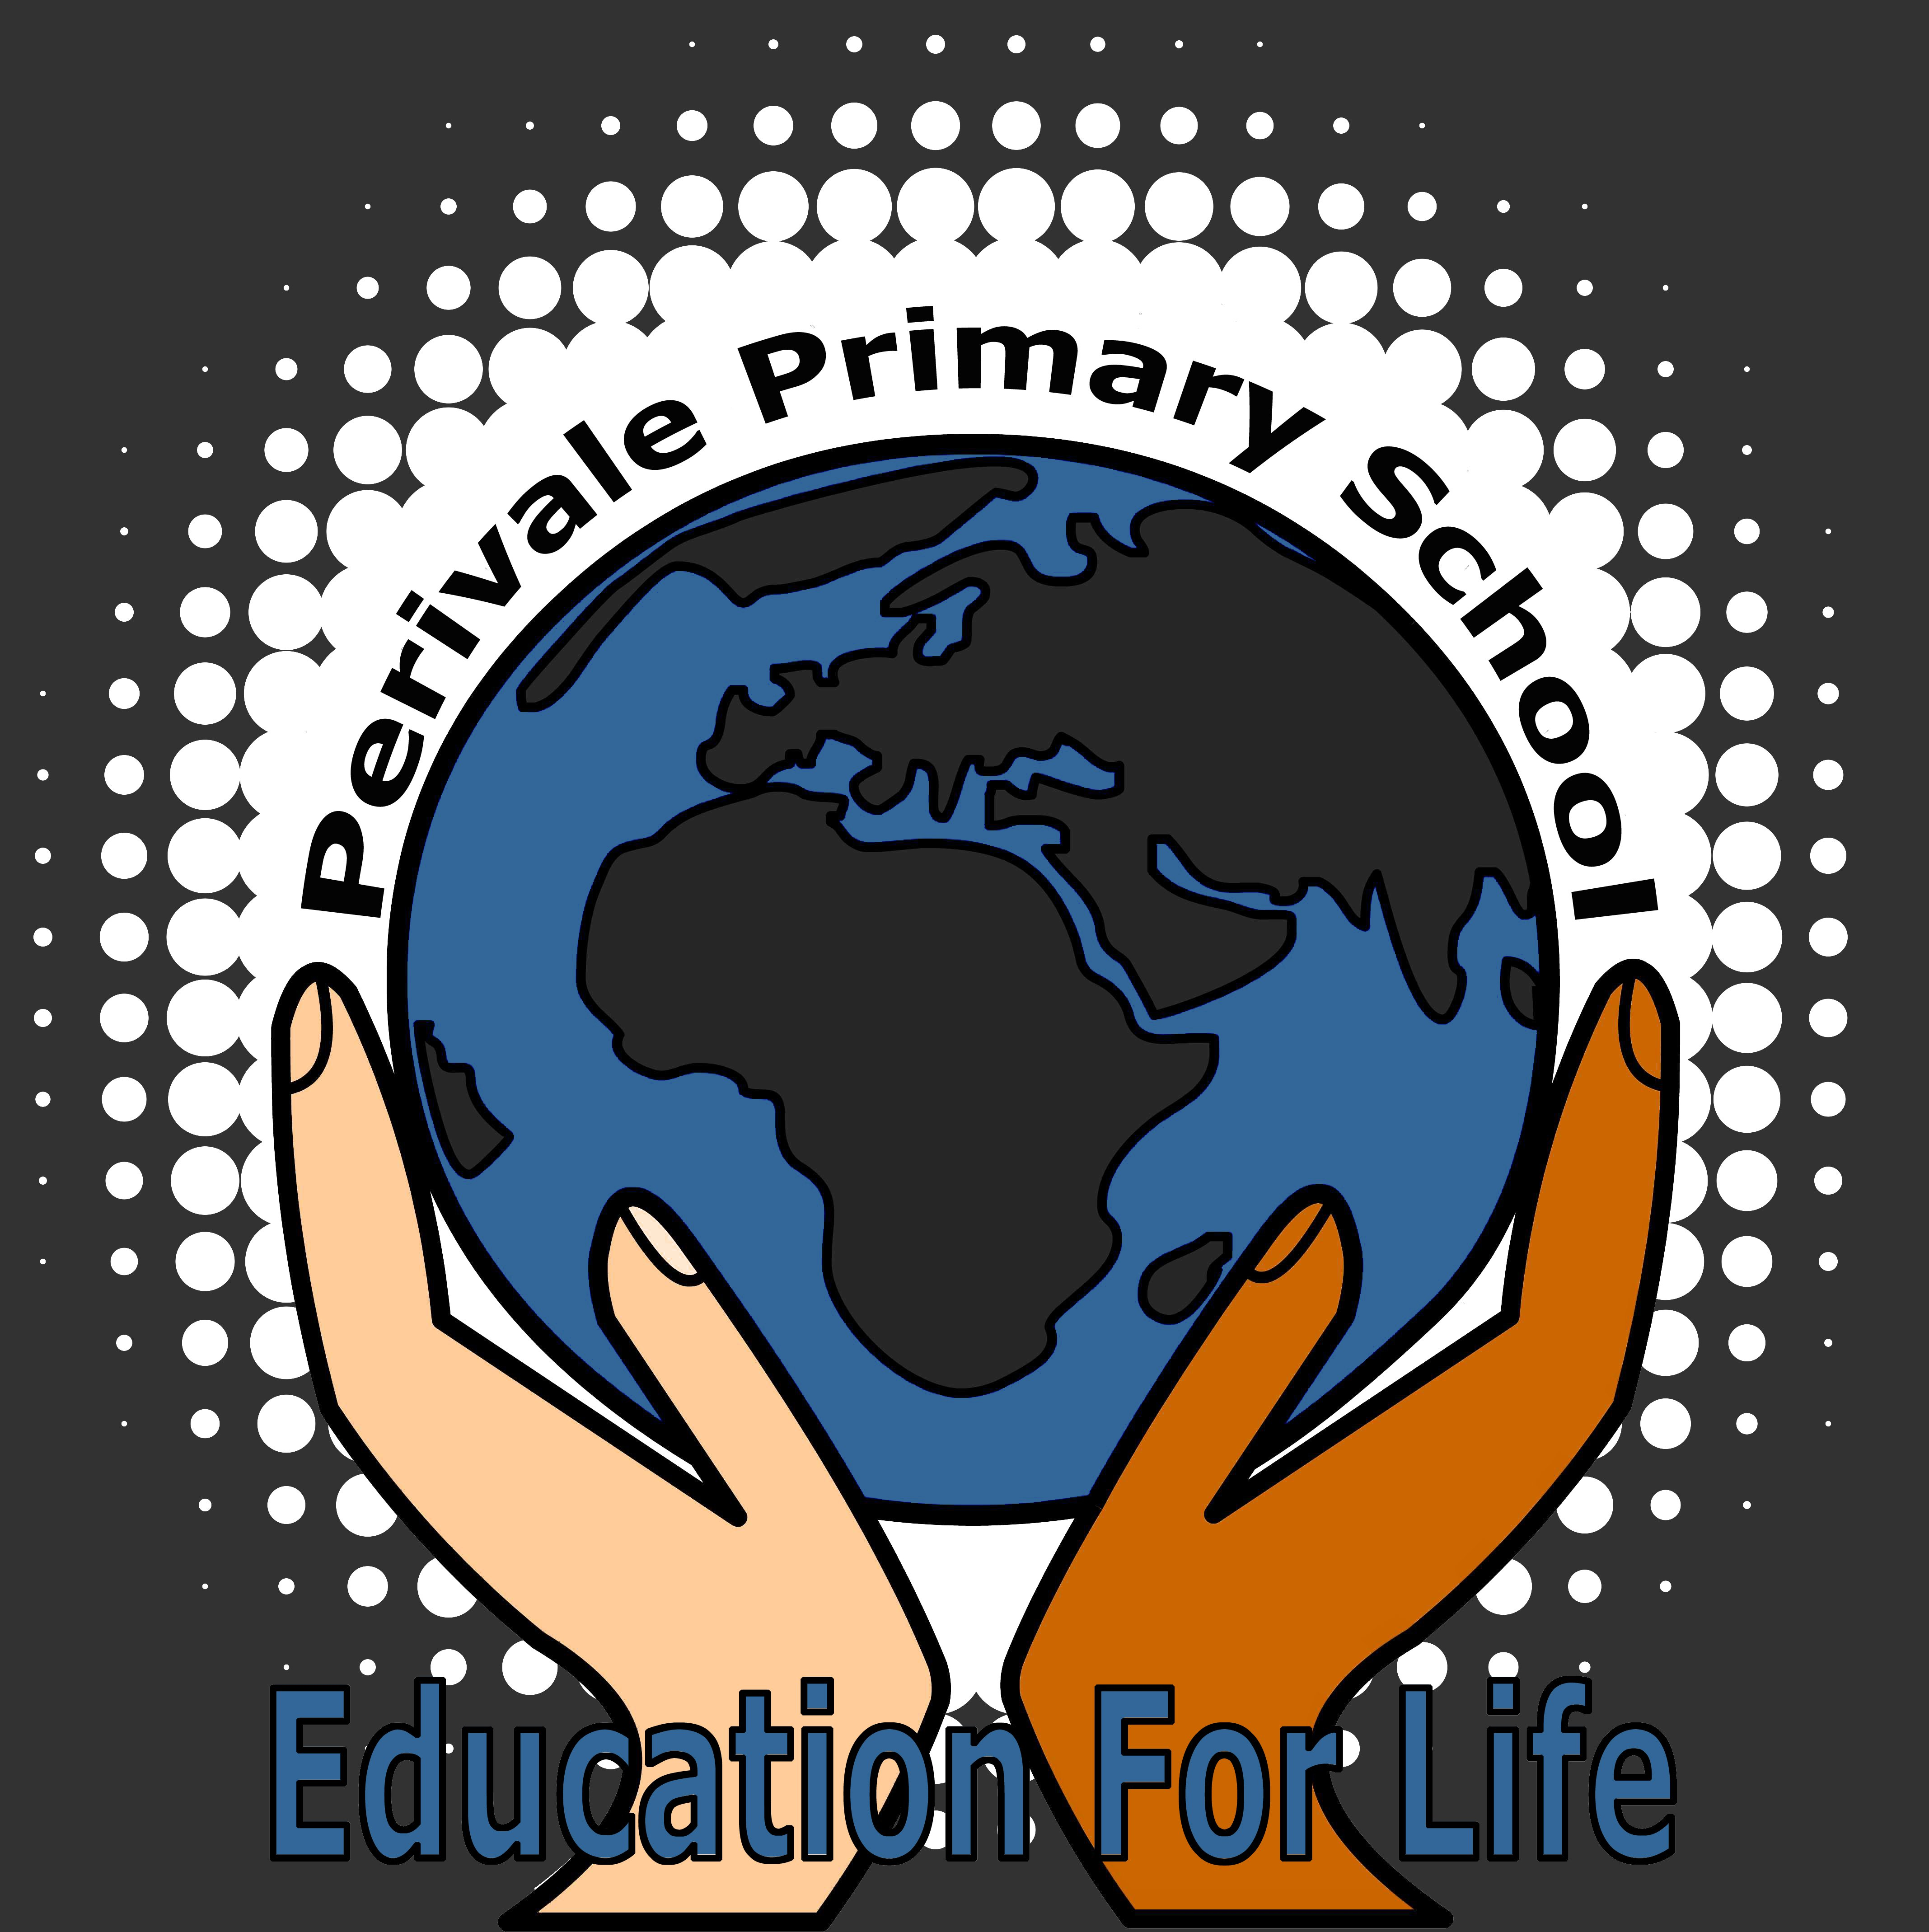 PERIVALE PRIMARY SCHOOL